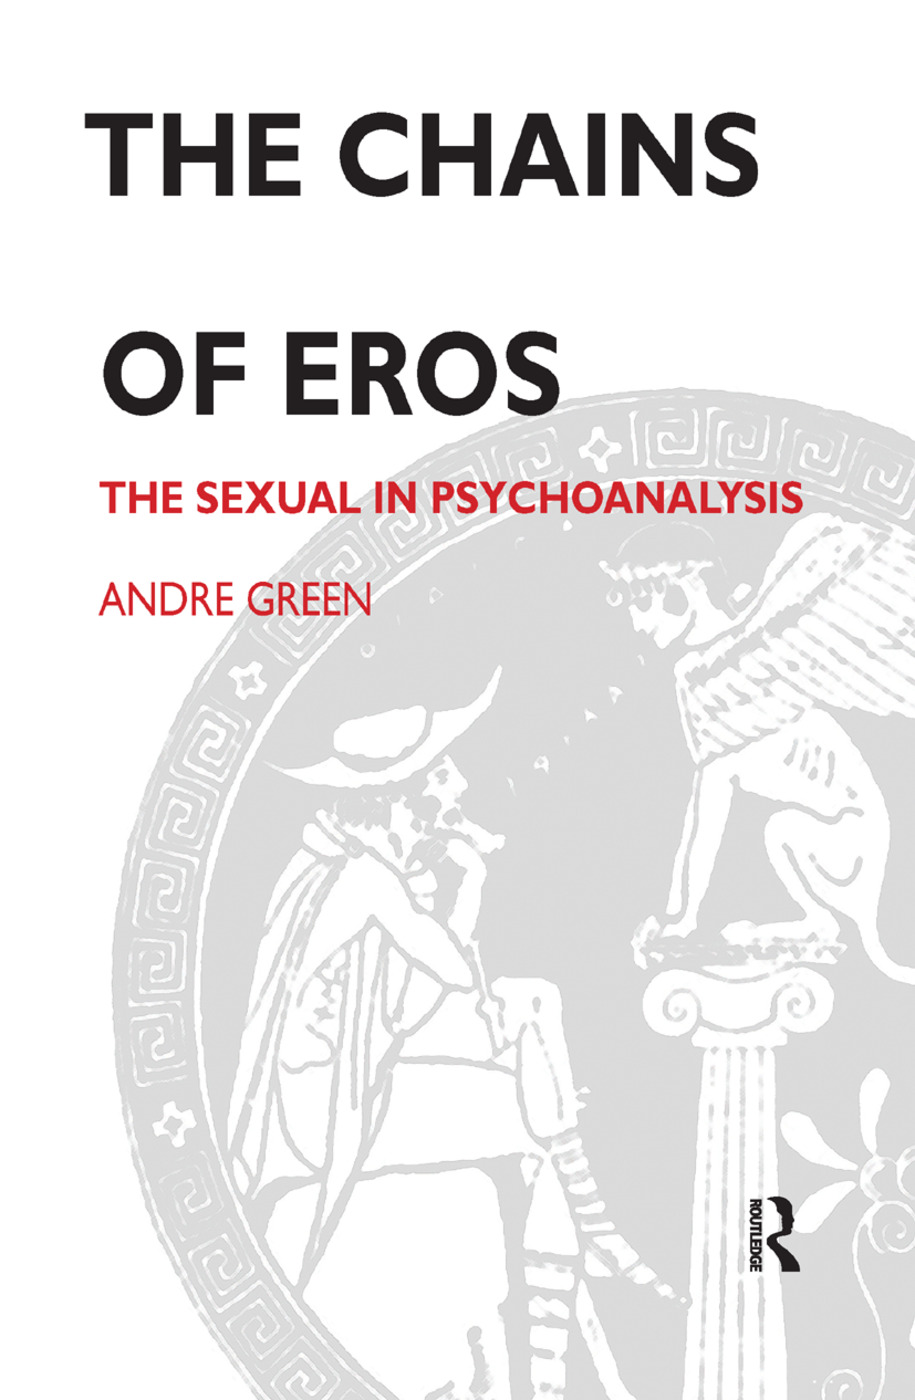 Eros: drives of life or love